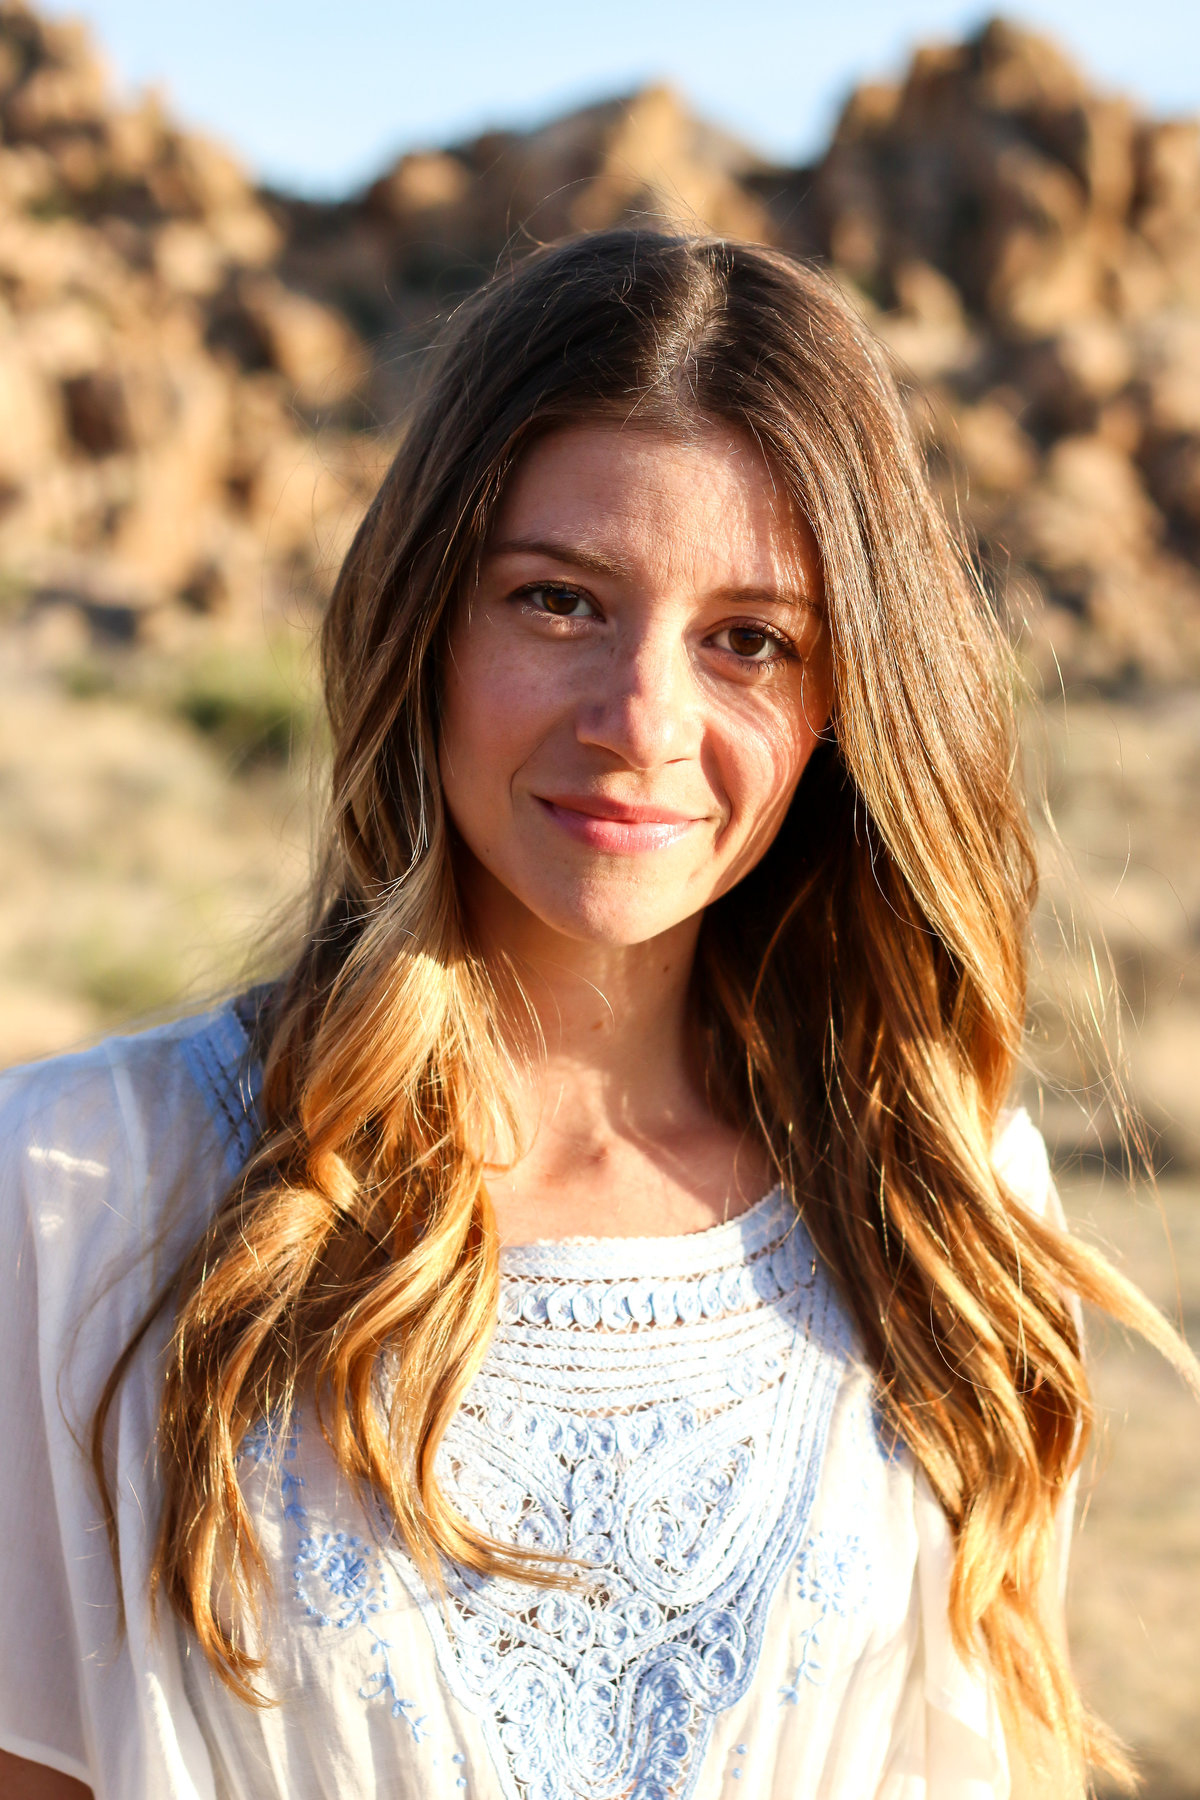 Joshua Tree styled professional headshot for young female entrepreneurs